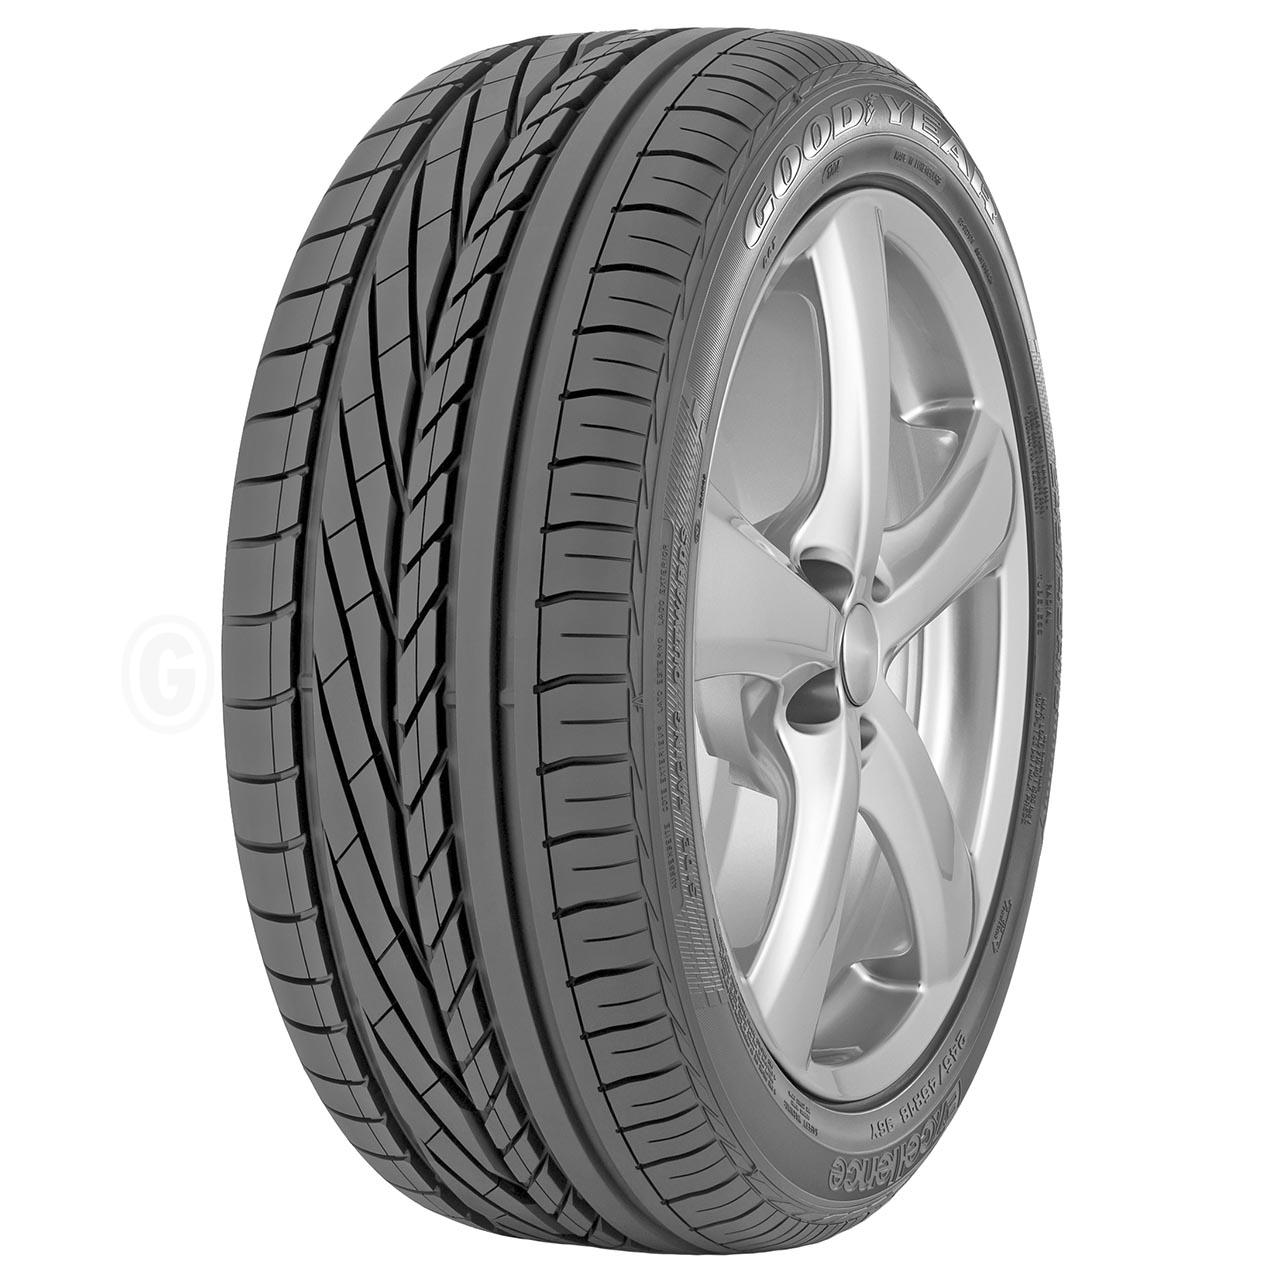 Goodyear Excellence 225/55R17 97Y ROF FP *